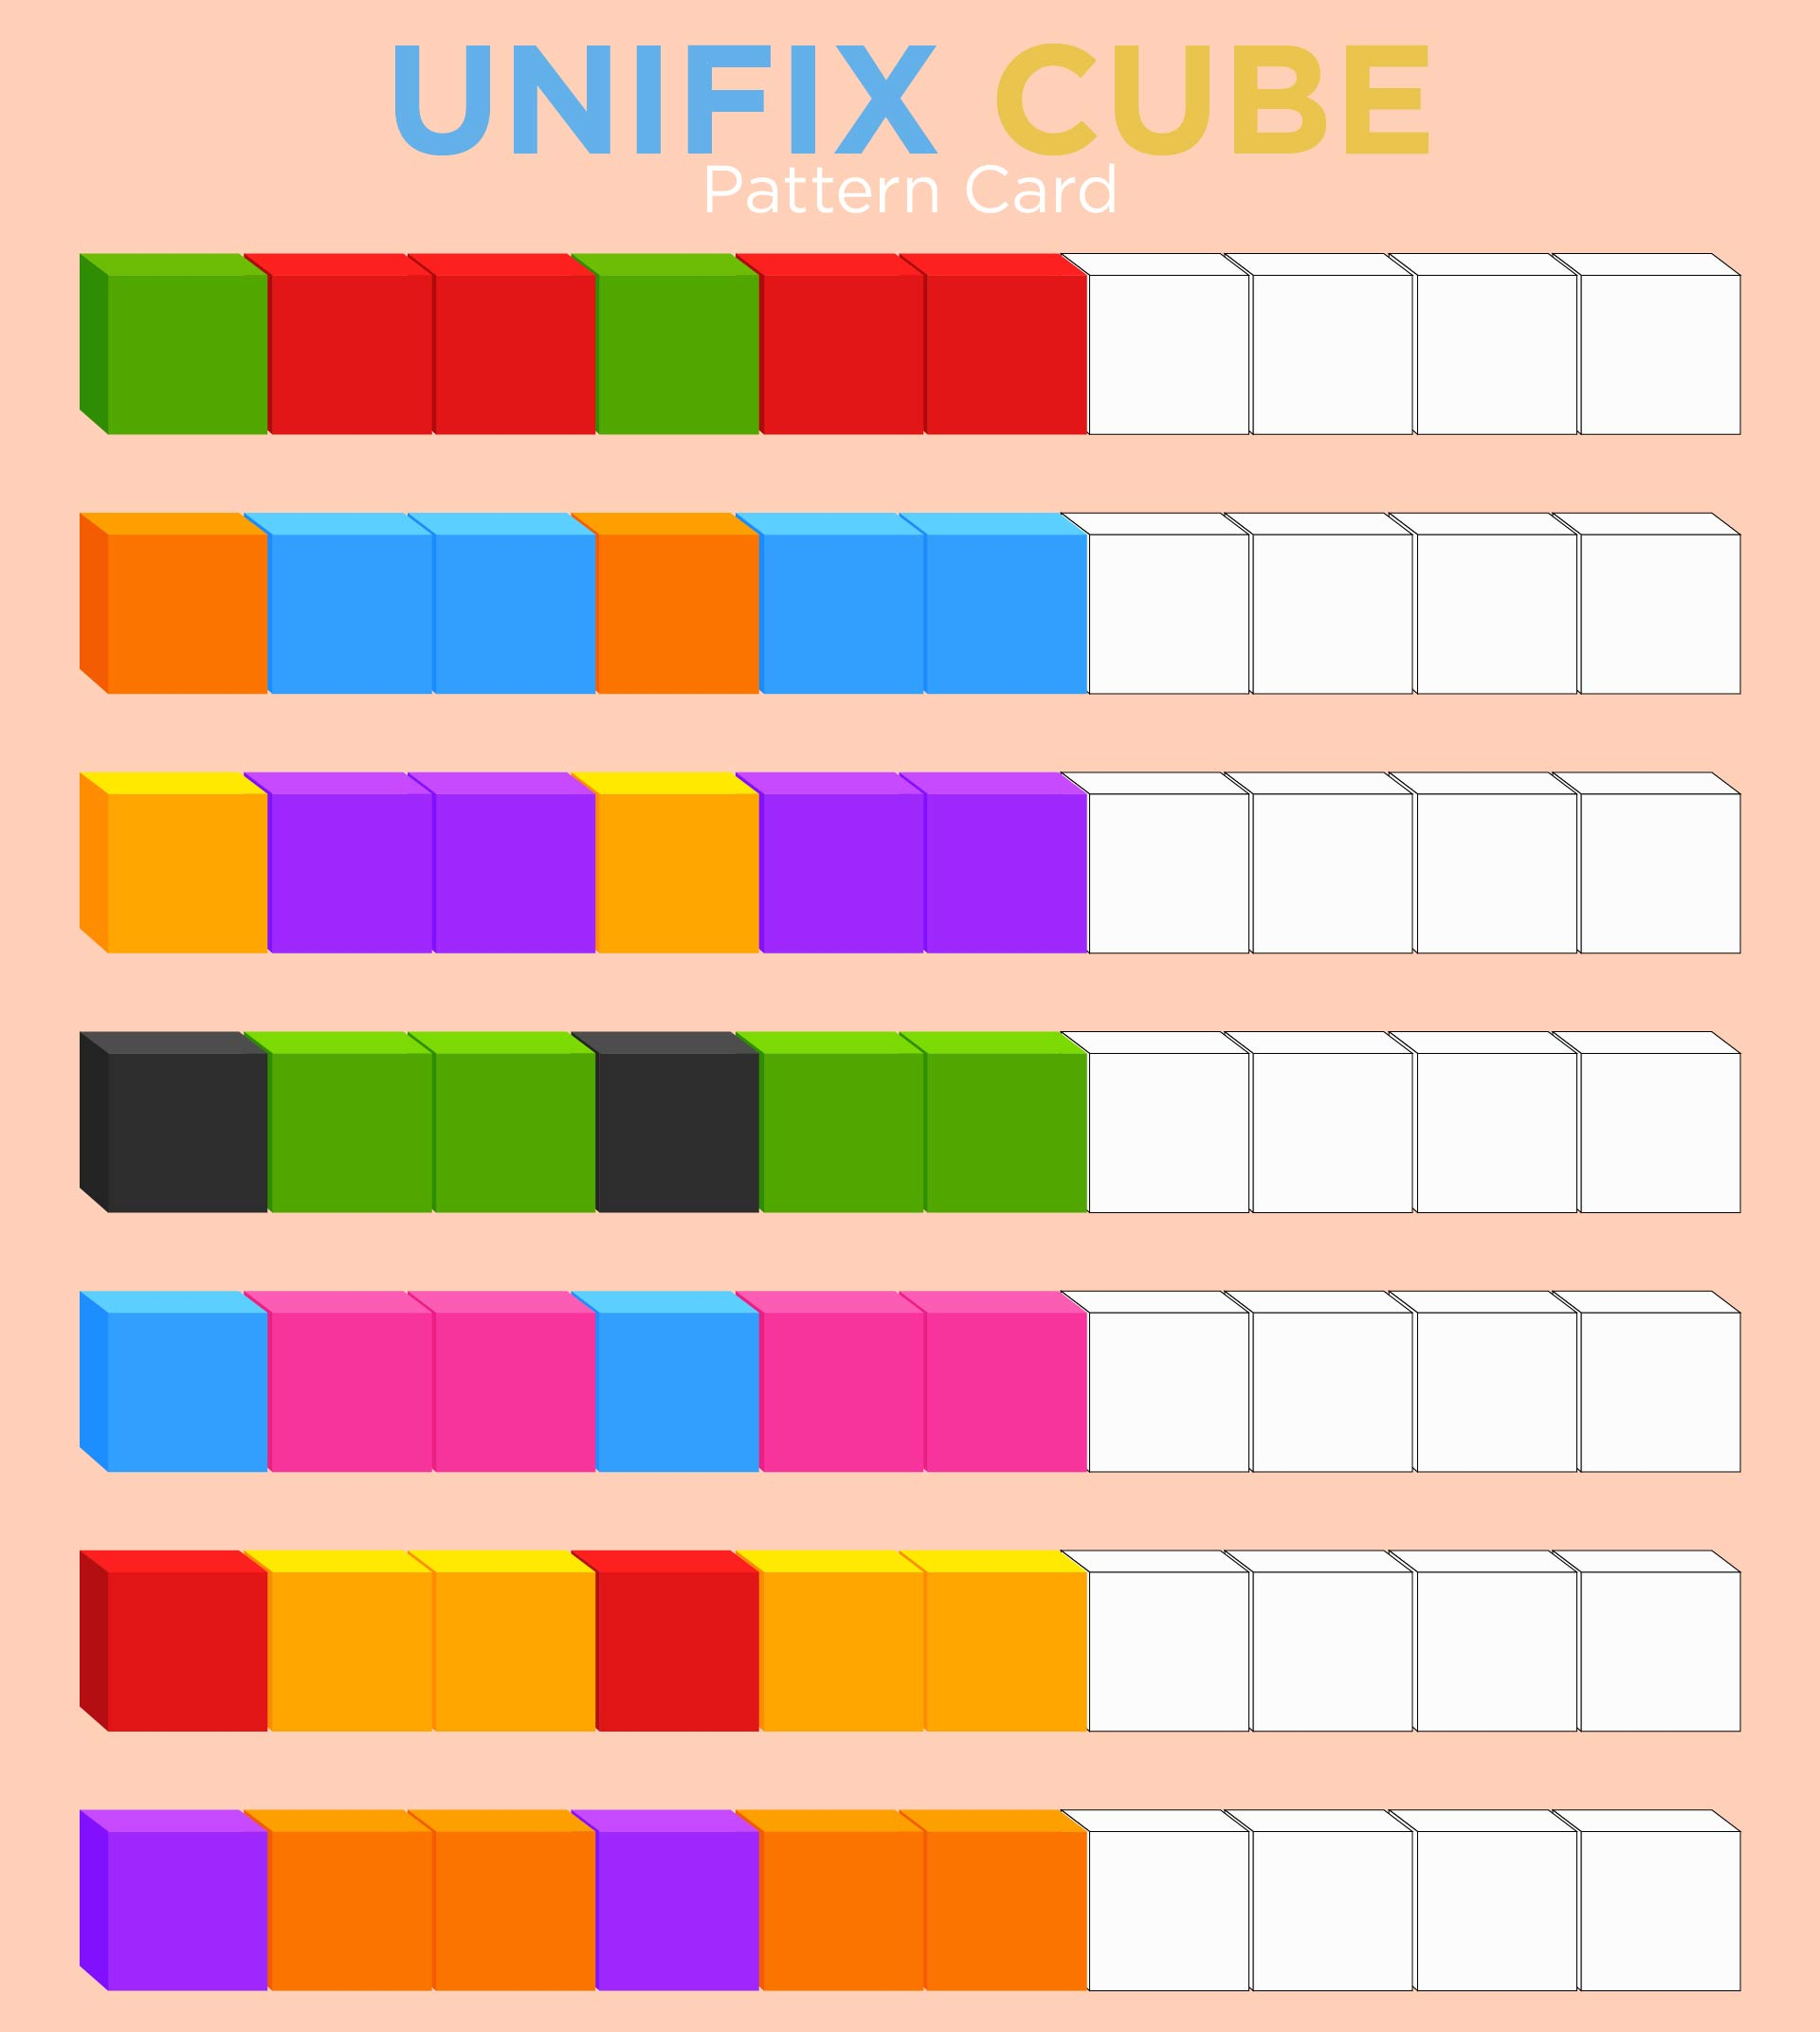 Printables Unifix Cubes Worksheets 5 best images of unifix cube template printable cubes pattern cards printable